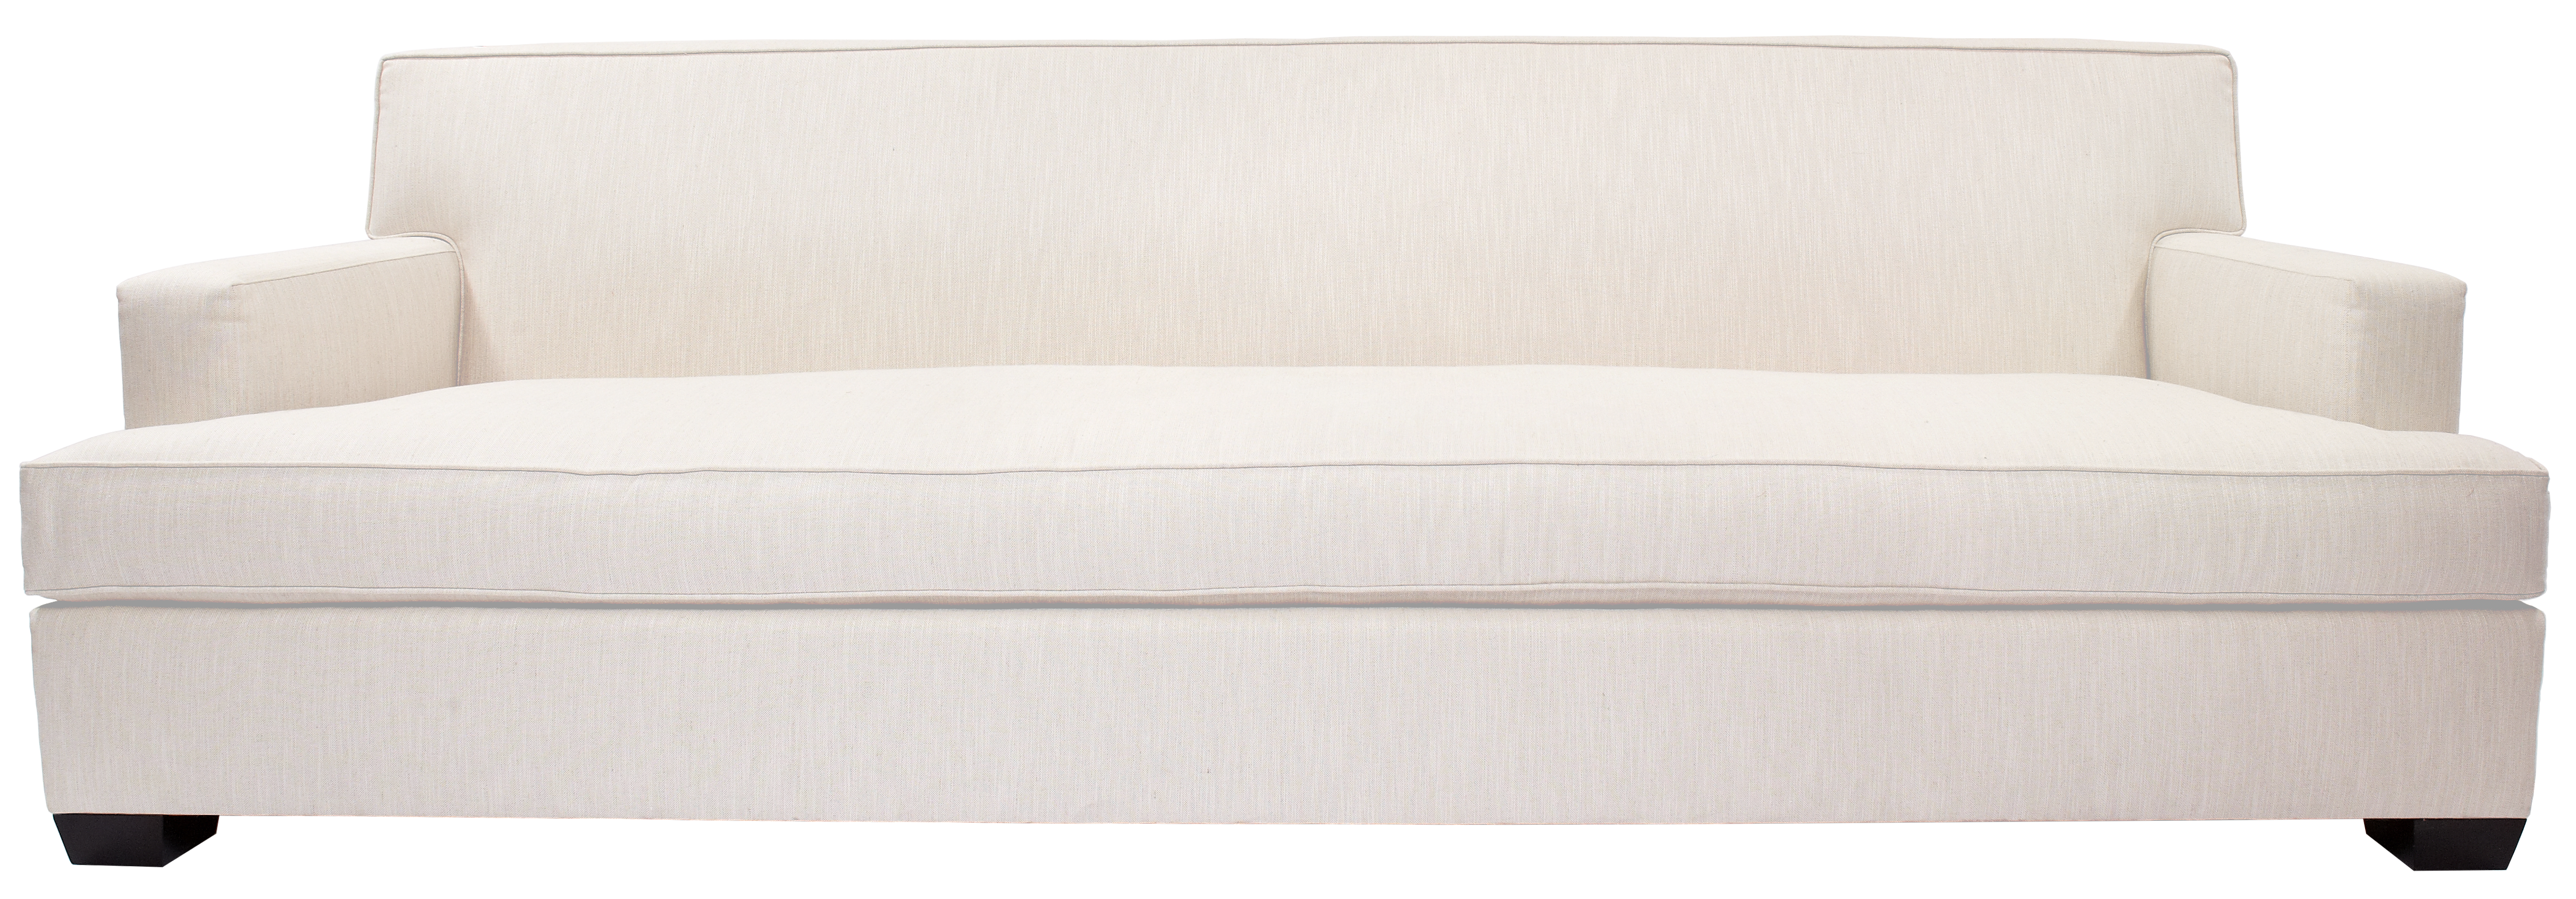 Png files for photoshop. Sofa here is the